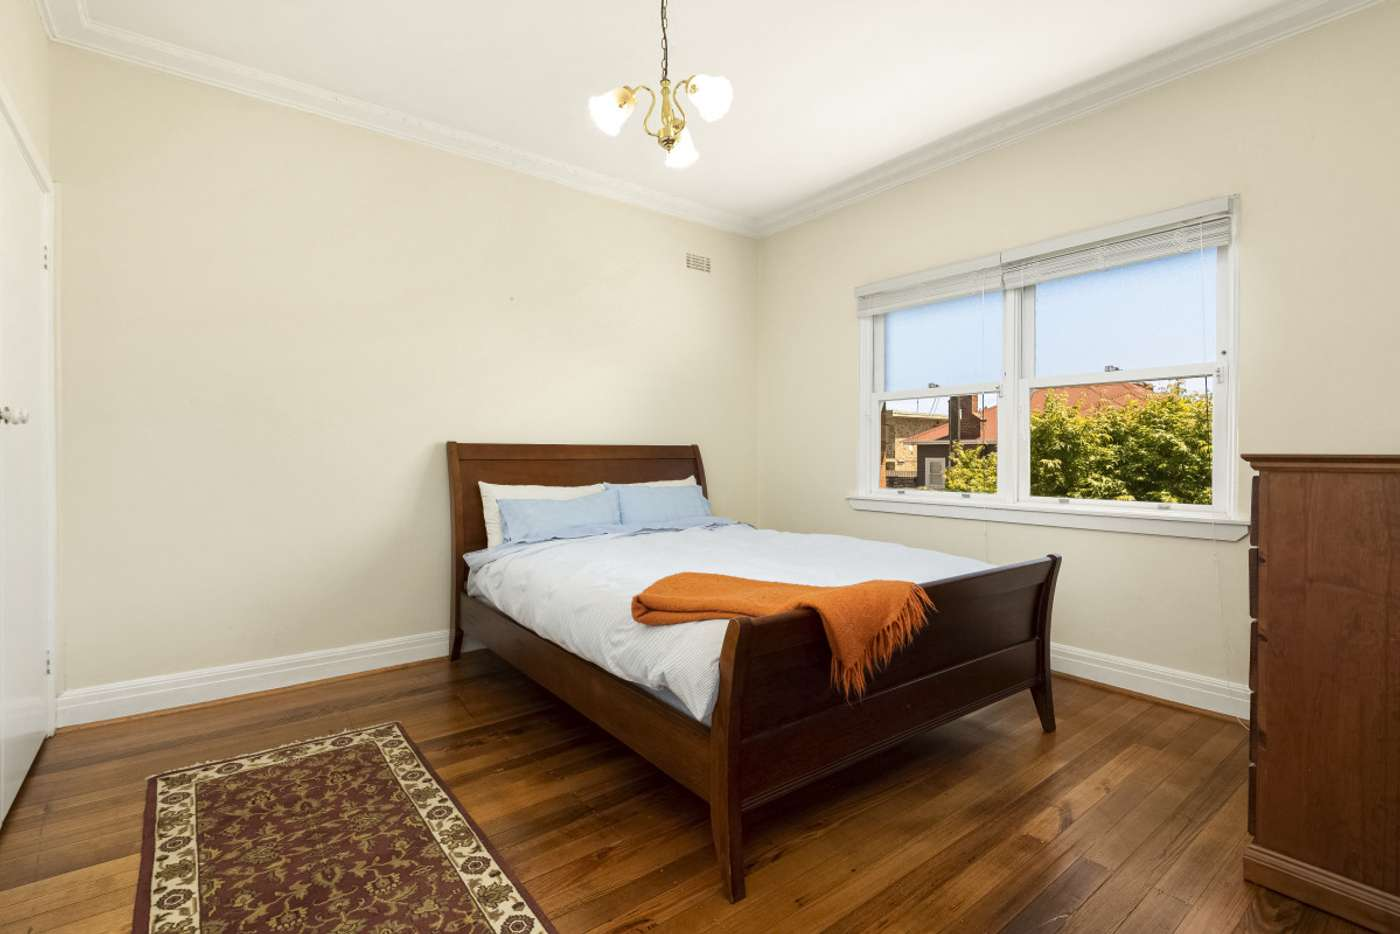 Sixth view of Homely unit listing, 3/1272 Glen Huntly Road, Carnegie VIC 3163